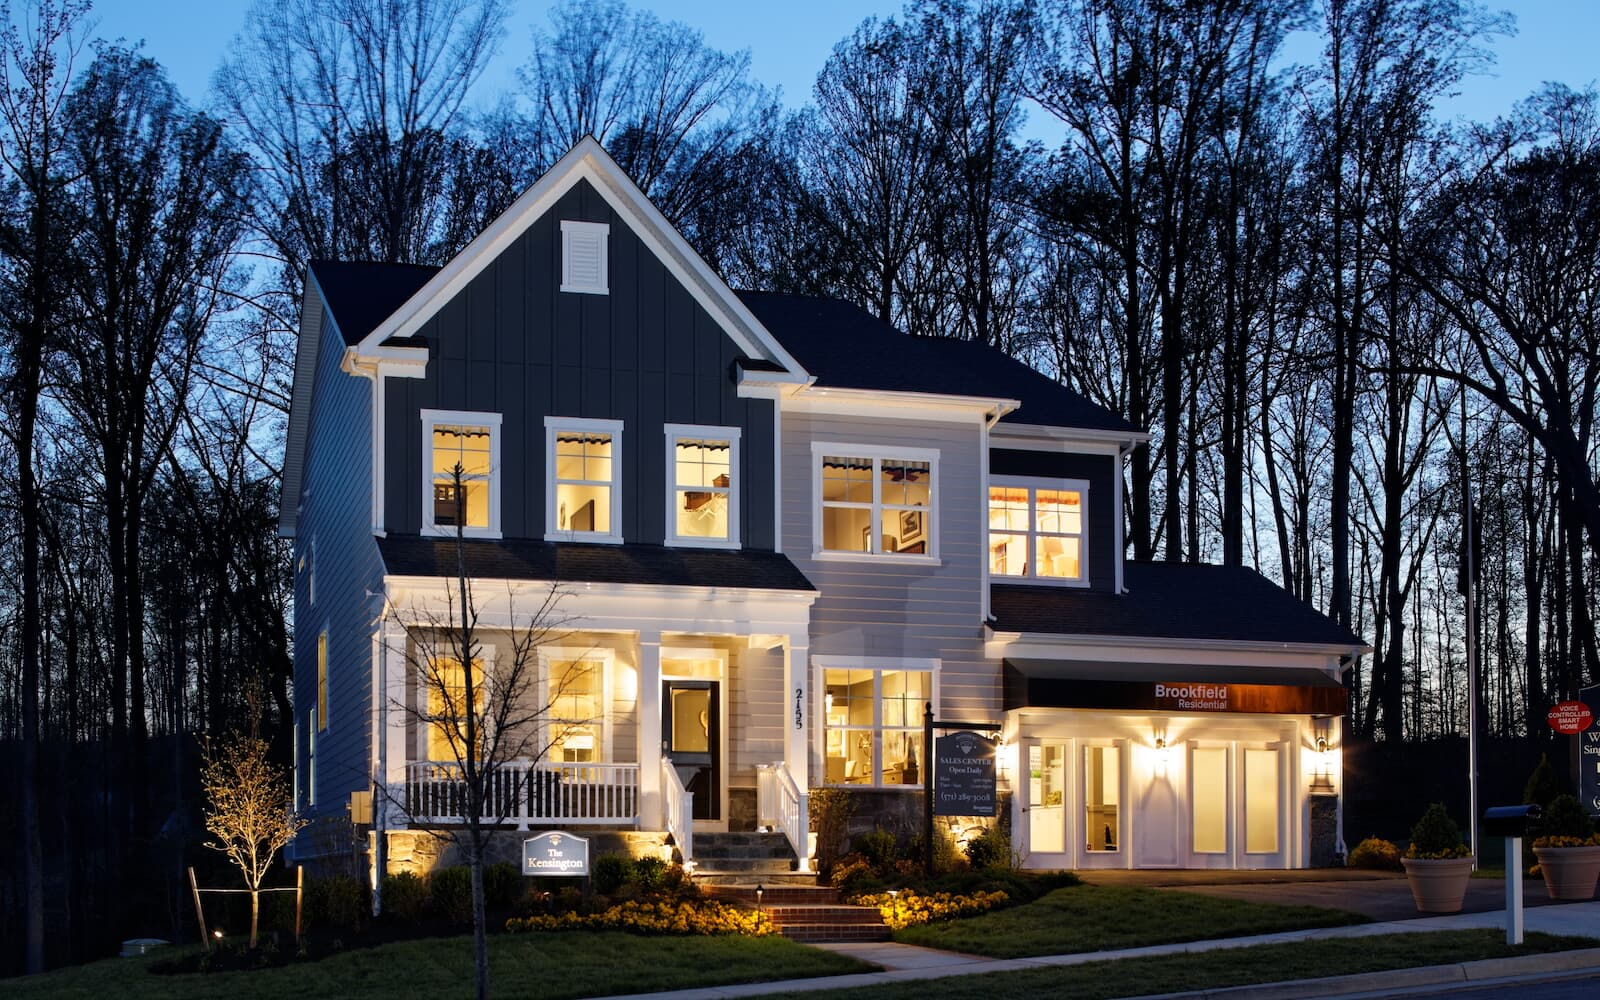 KensingtonII-exterior-night-single-family-homes-potomac-shores-va-potomac-shores-brookfield-residential